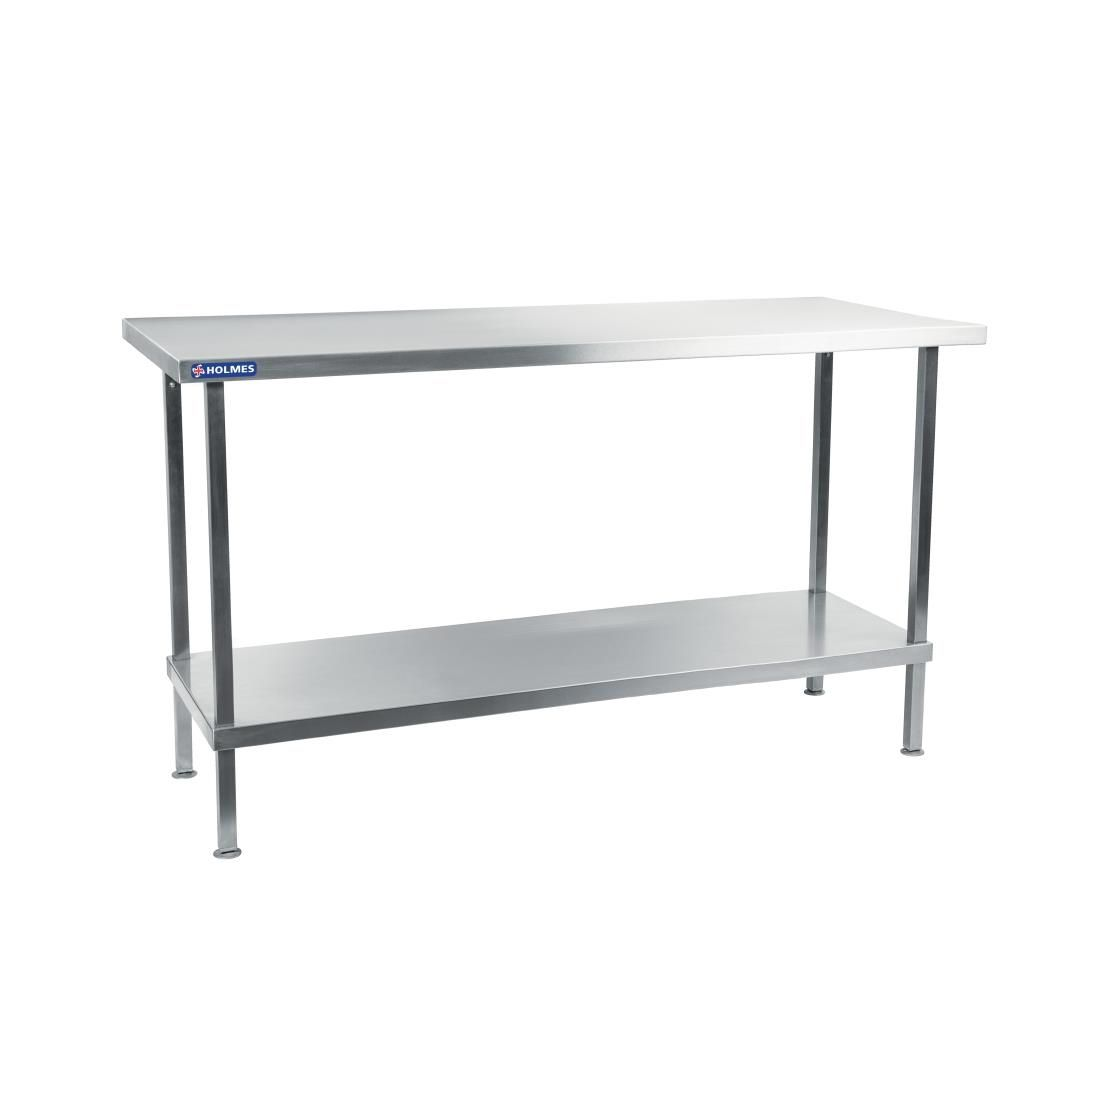 Holmes Self Assembly Stainless Steel Centre Table 1500mm - DR350